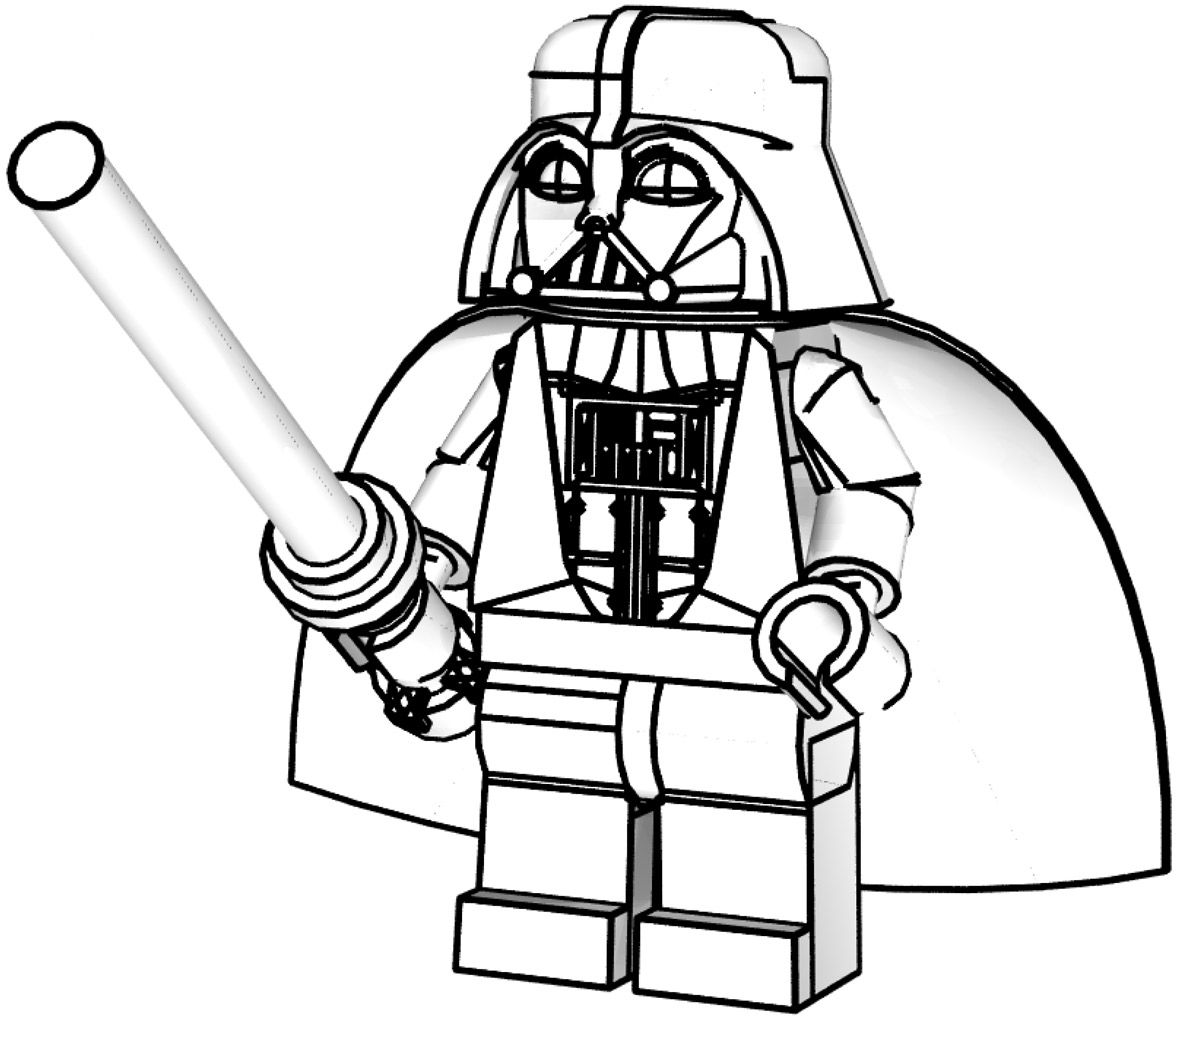 Lego Star Wars Coloring Pages For Kids Printable | Coloring pages ...